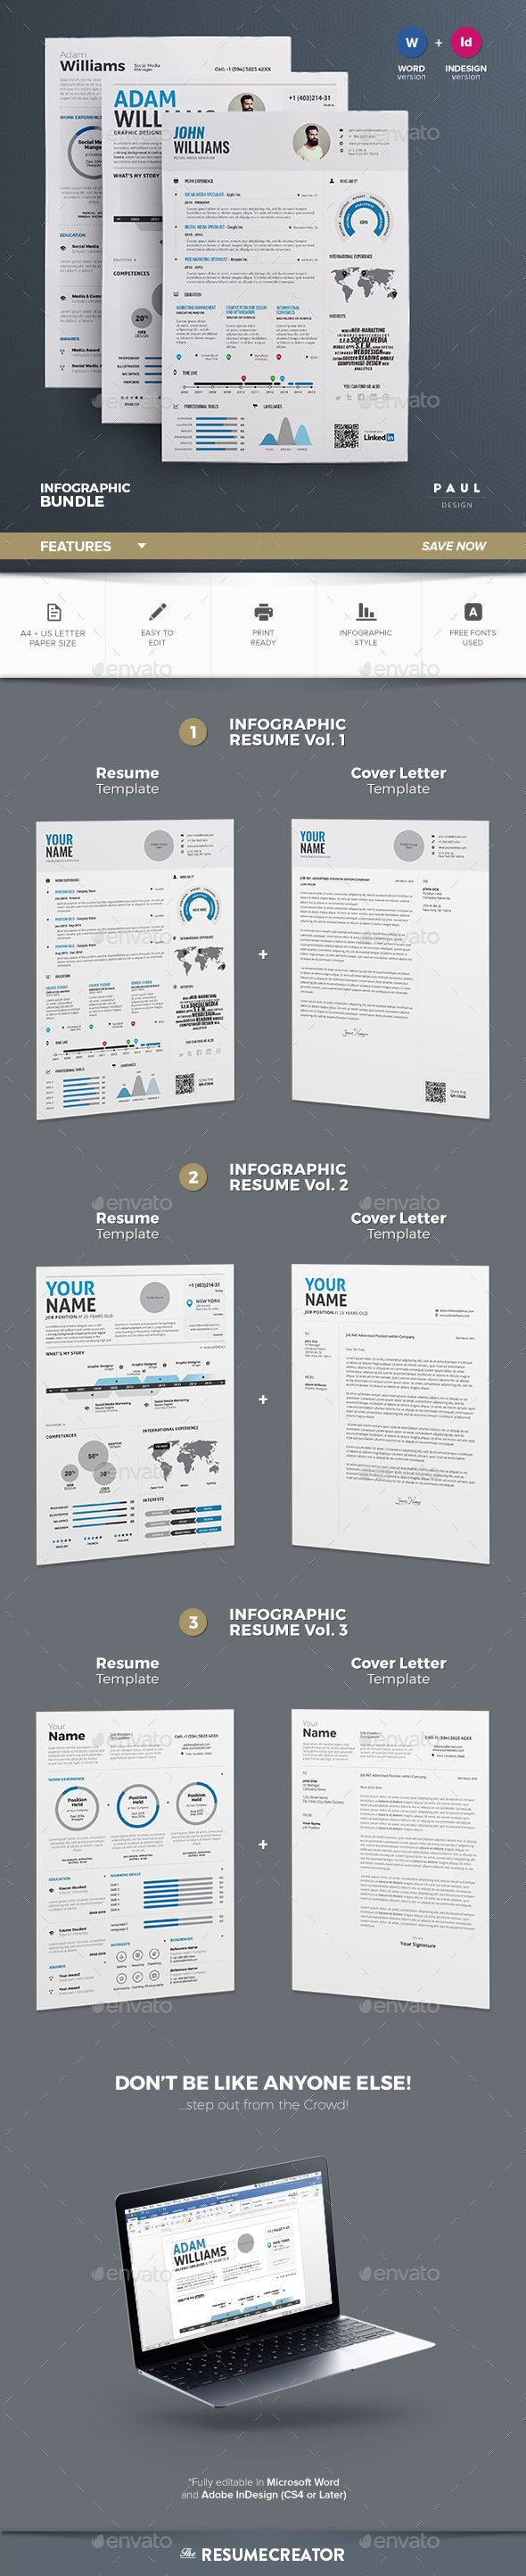 Resume in Infographic style, and very easy to edit. include Resume and Cover letter. Freen awesome font used. So easy to edit in MS word.